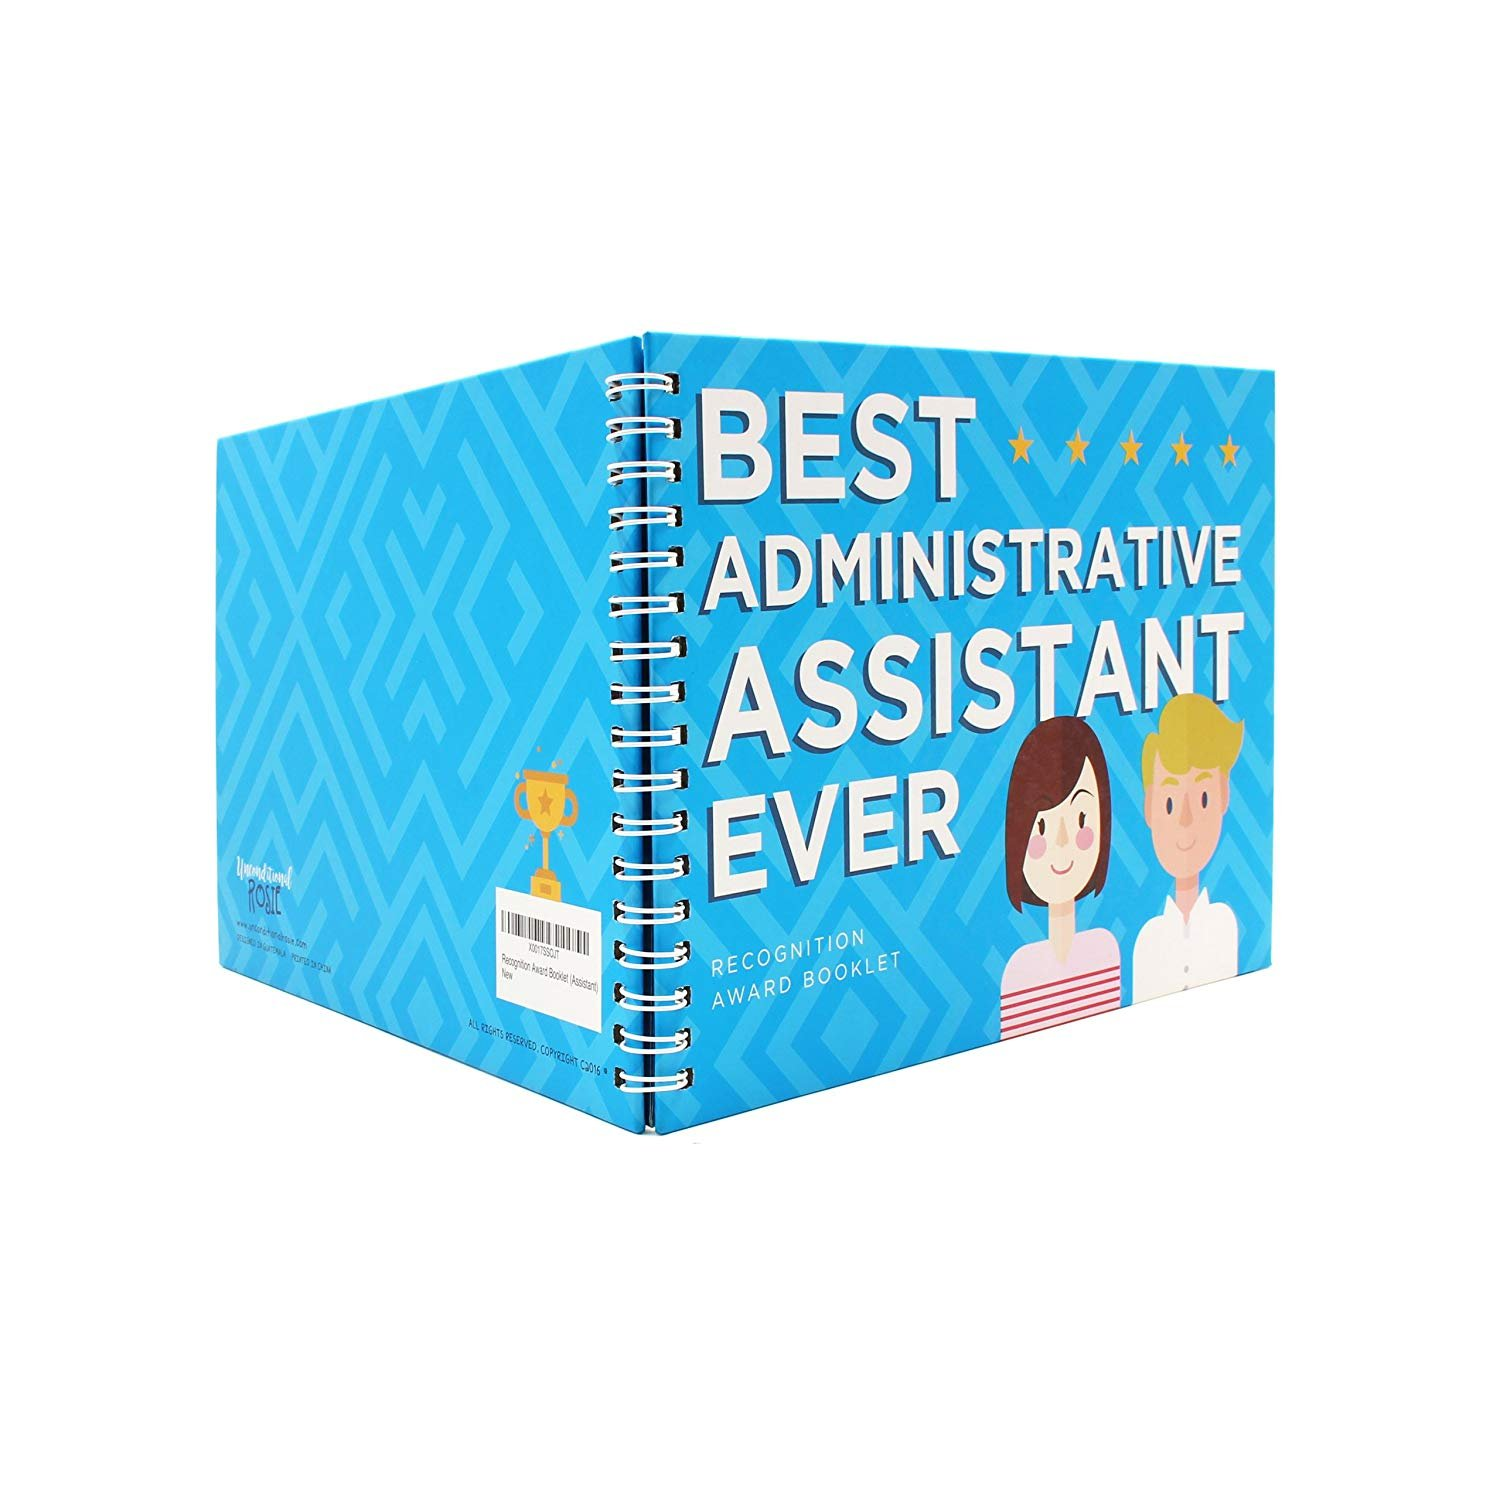 Amazon.com: Best Administrative Assistant Ever Edition - This 24 ...